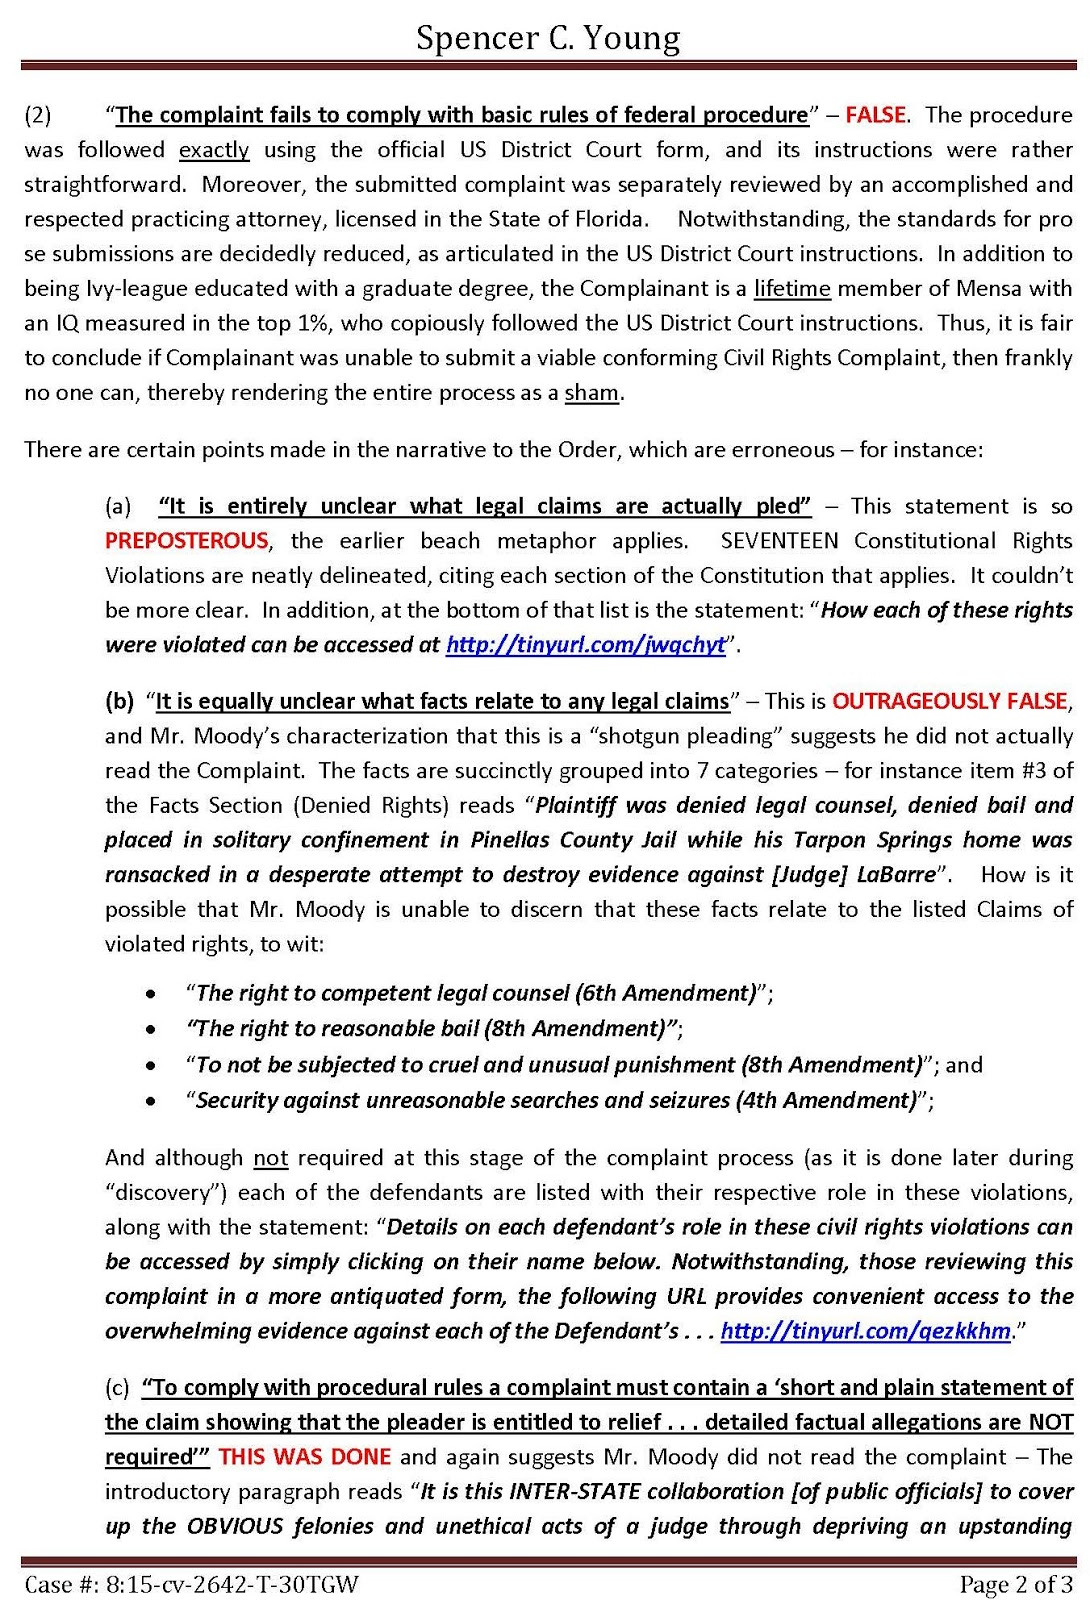 MorganStanleyGate – Resubmission Cover Letter